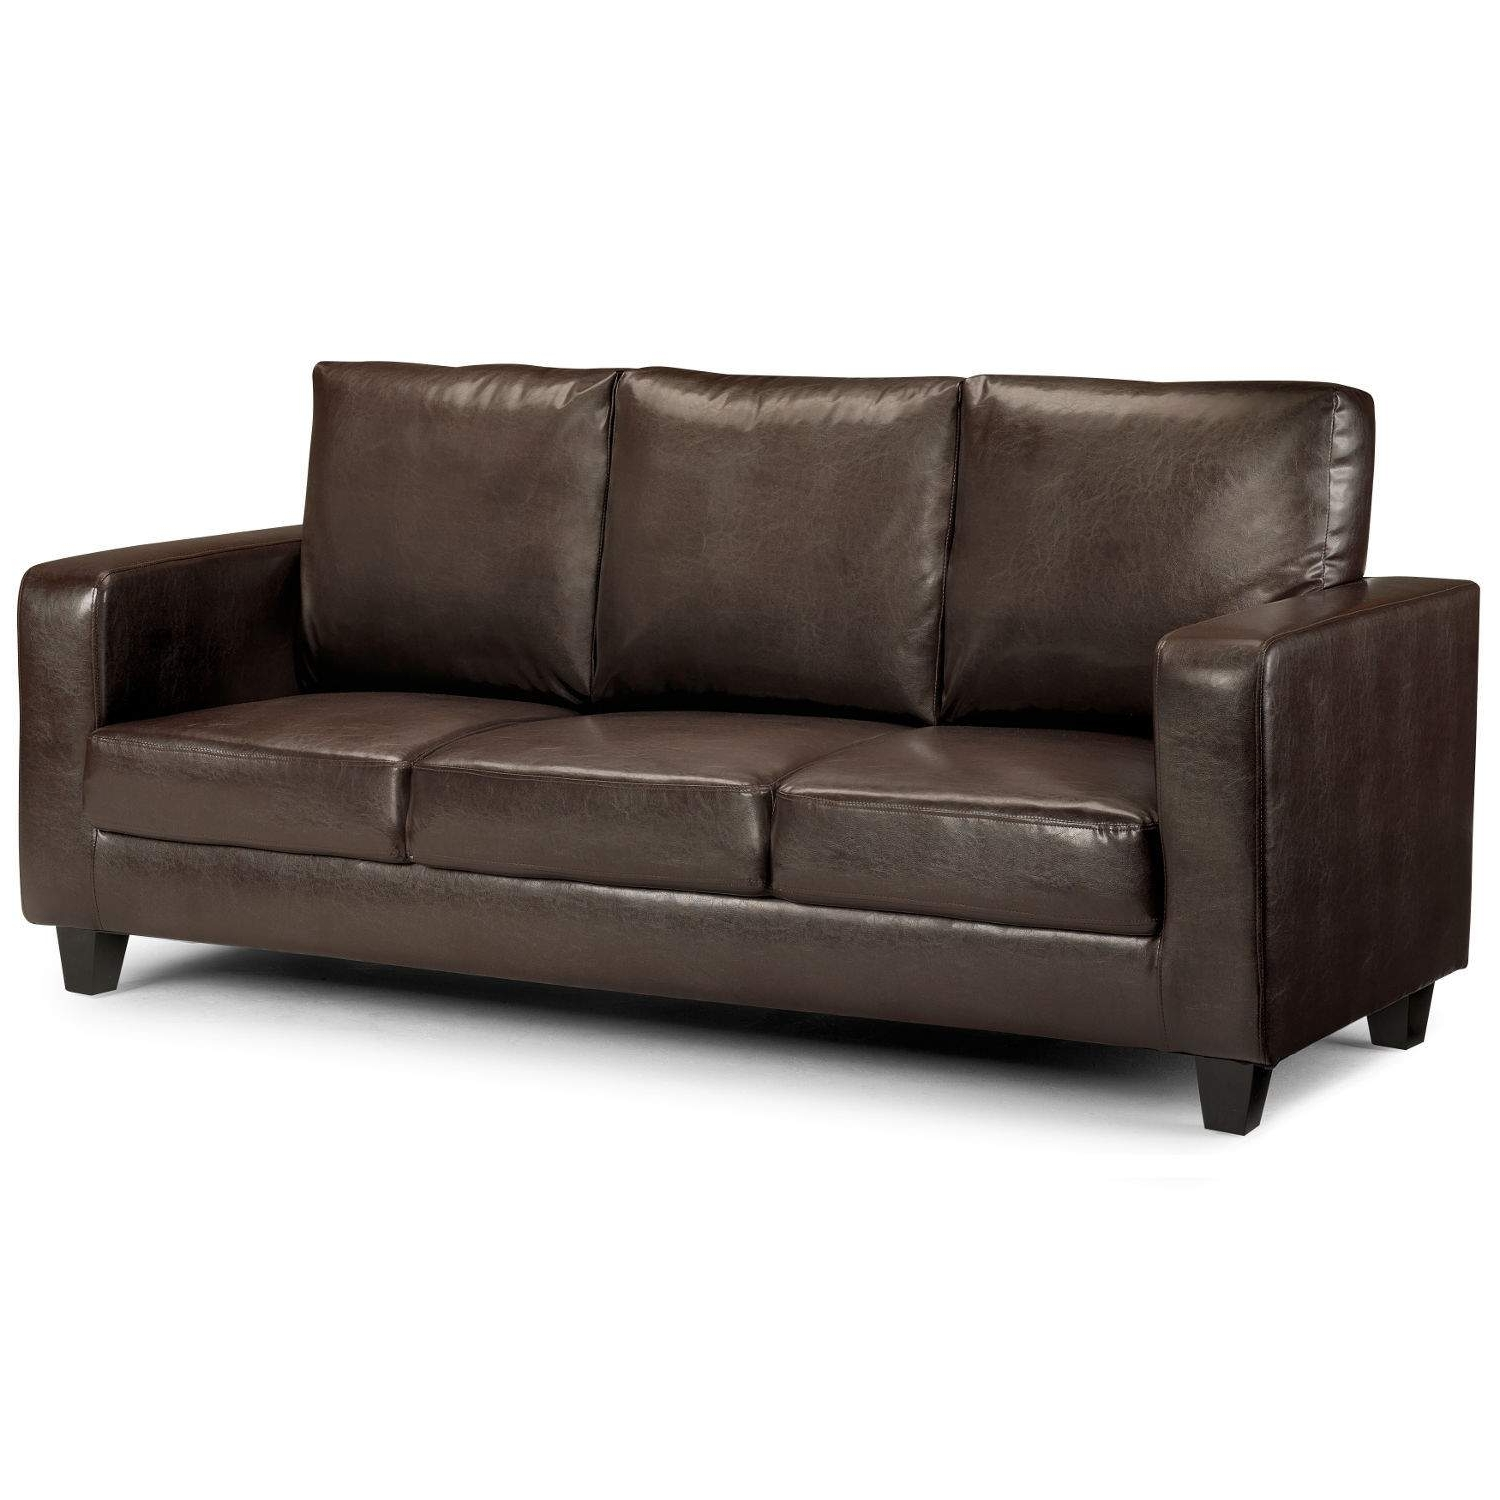 Matthew 3 Seater Faux Leather Sofa – Next Day Delivery Matthew 3 In Best And Newest 3 Seater Leather Sofas (View 3 of 20)